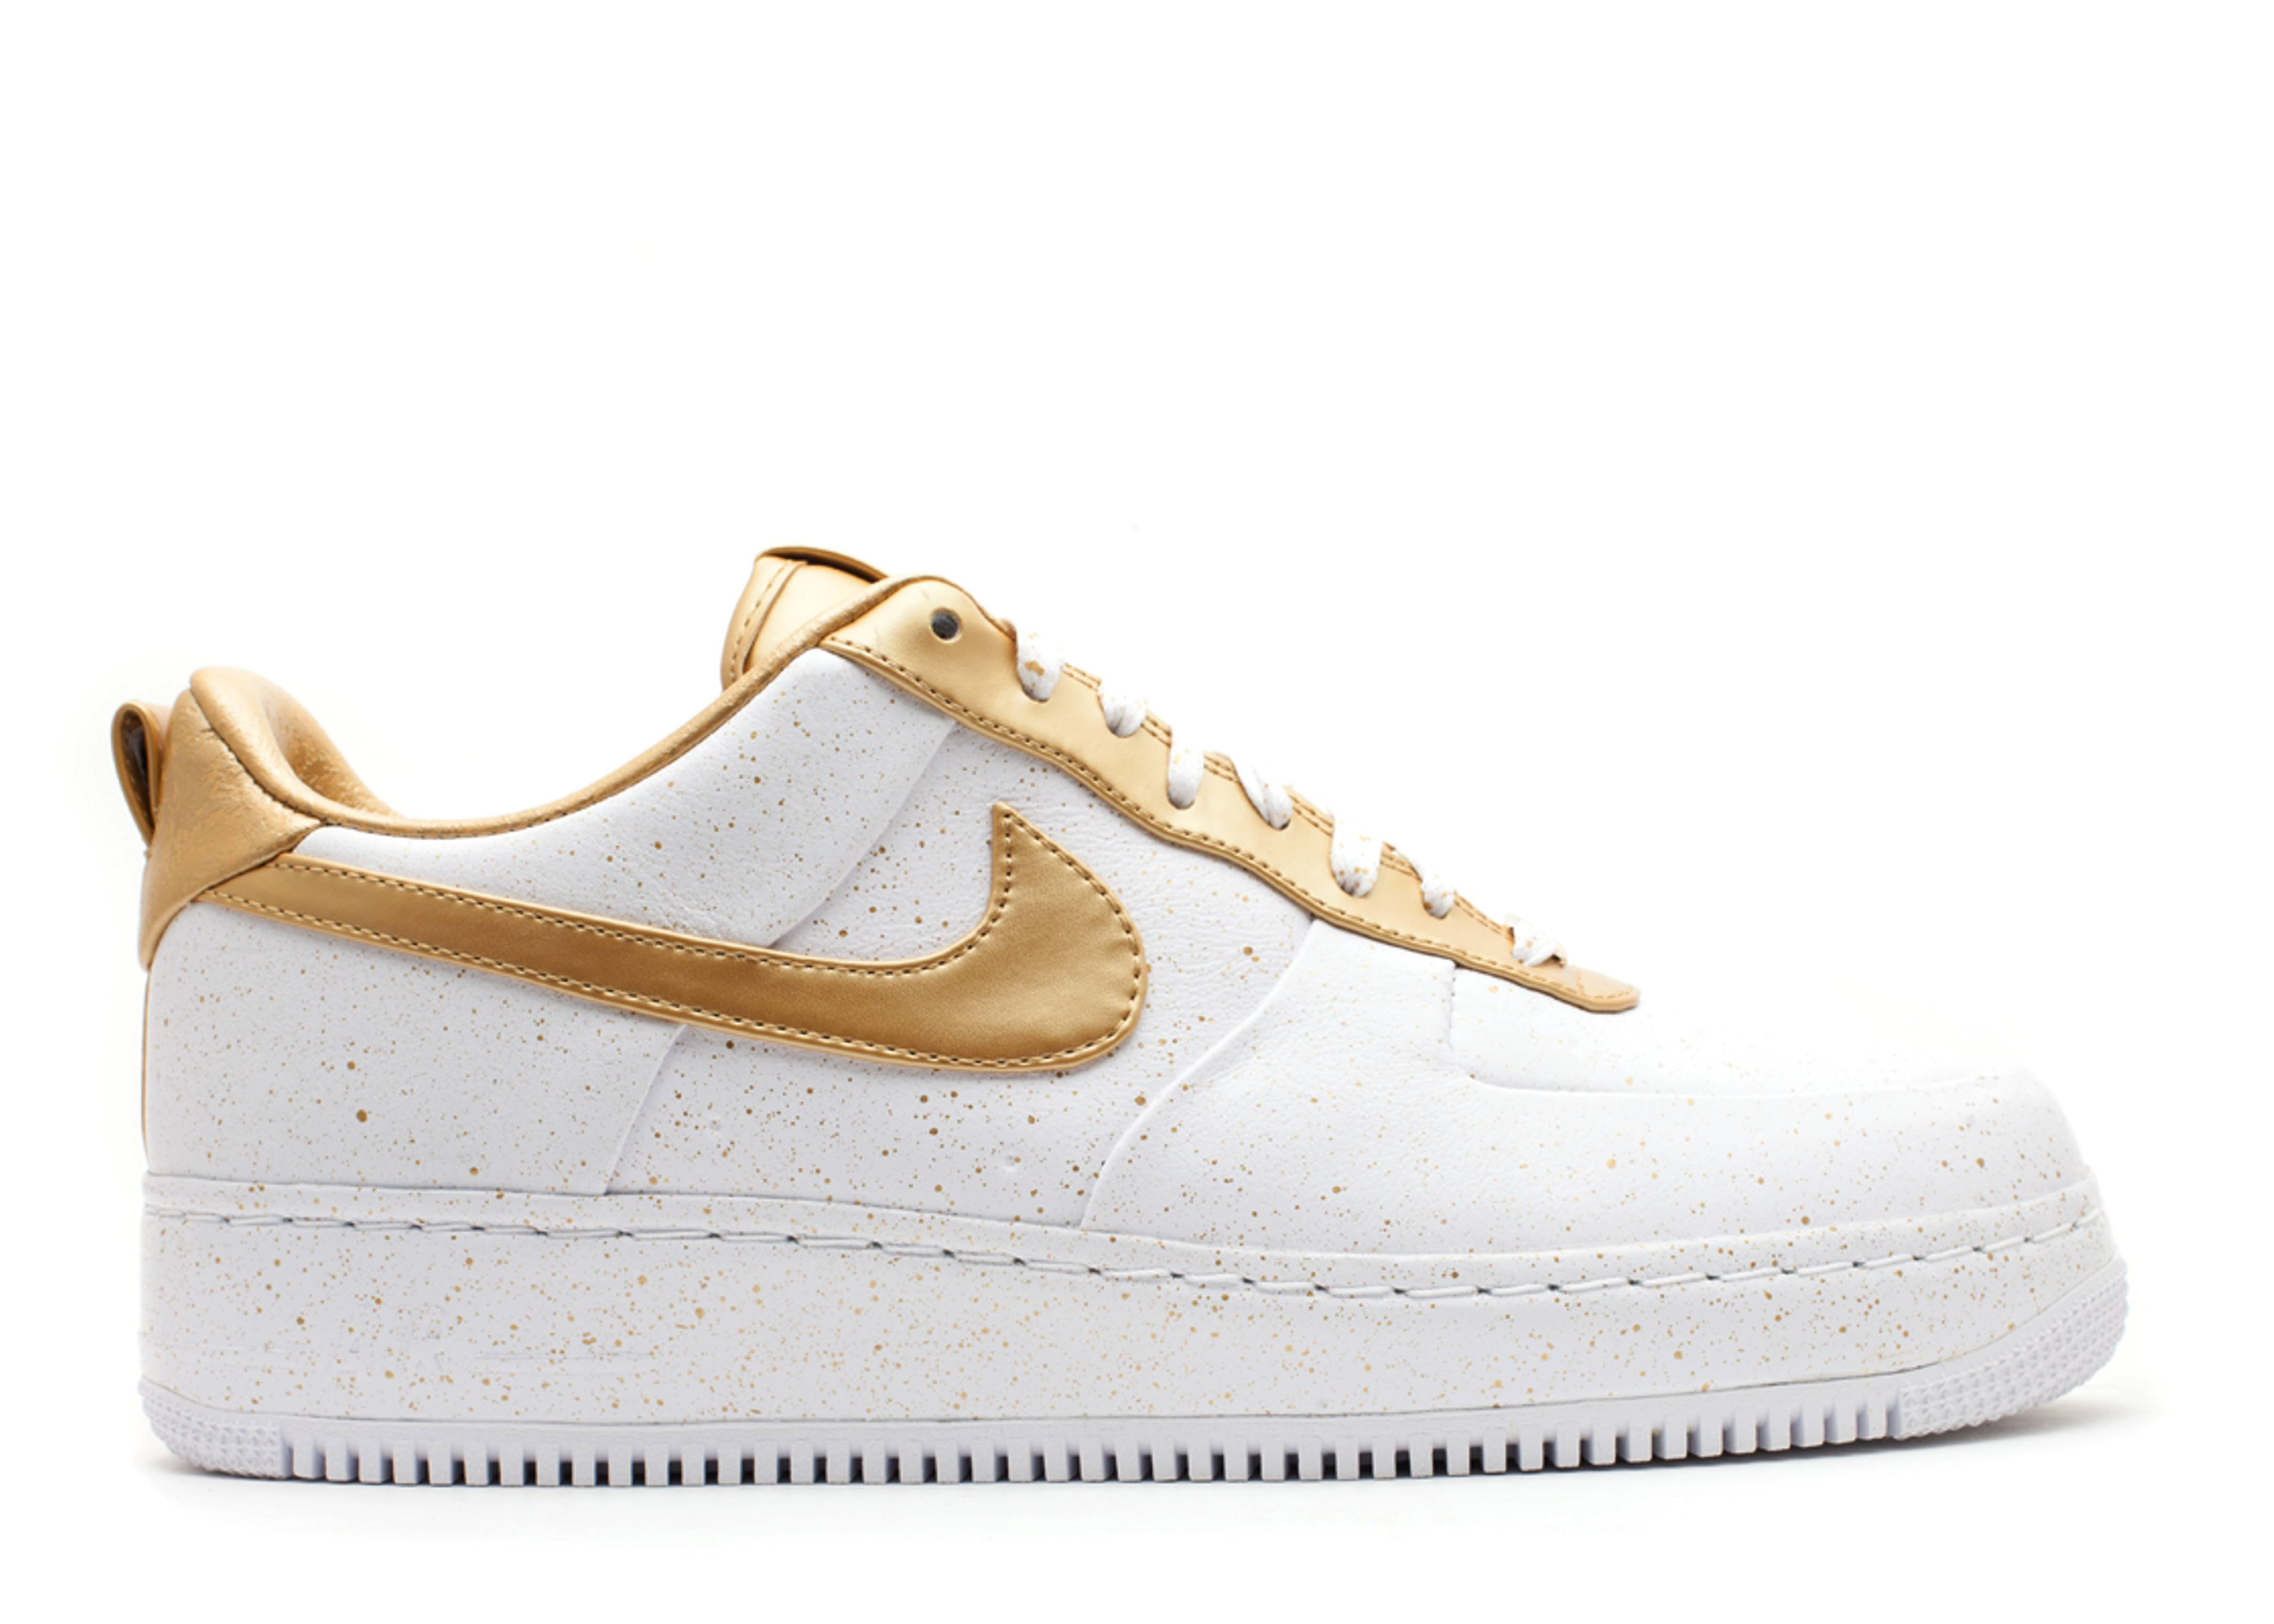 nike air force questlove gold toe